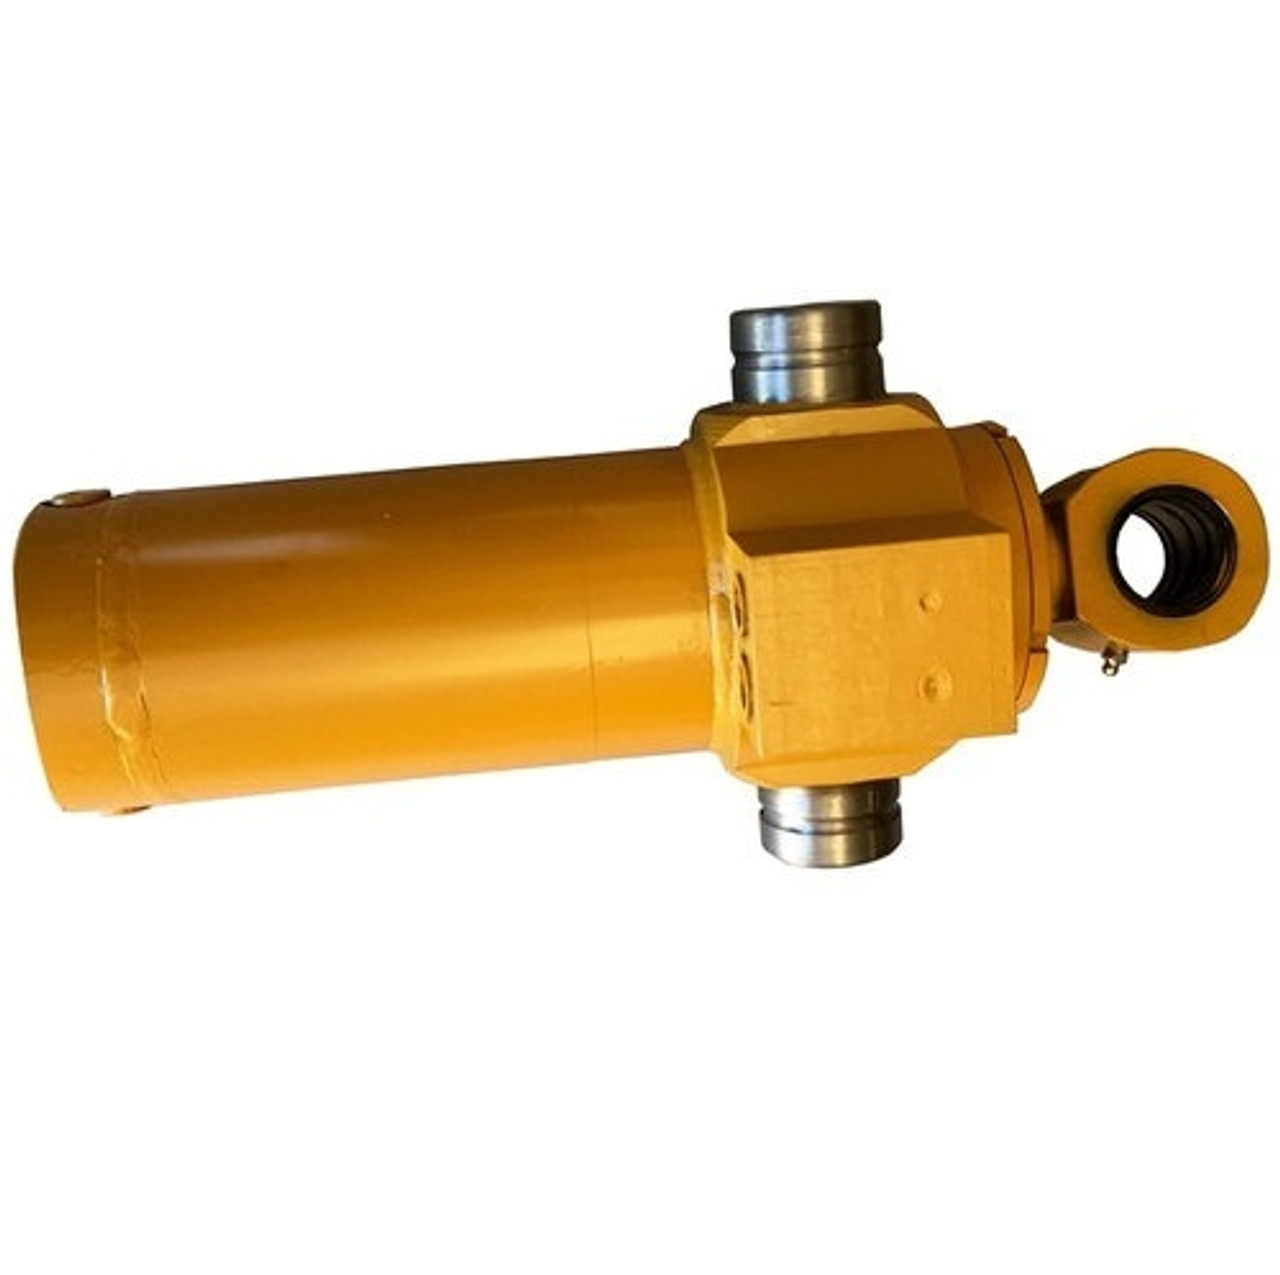 Backhoe Hydraulic Cylinder